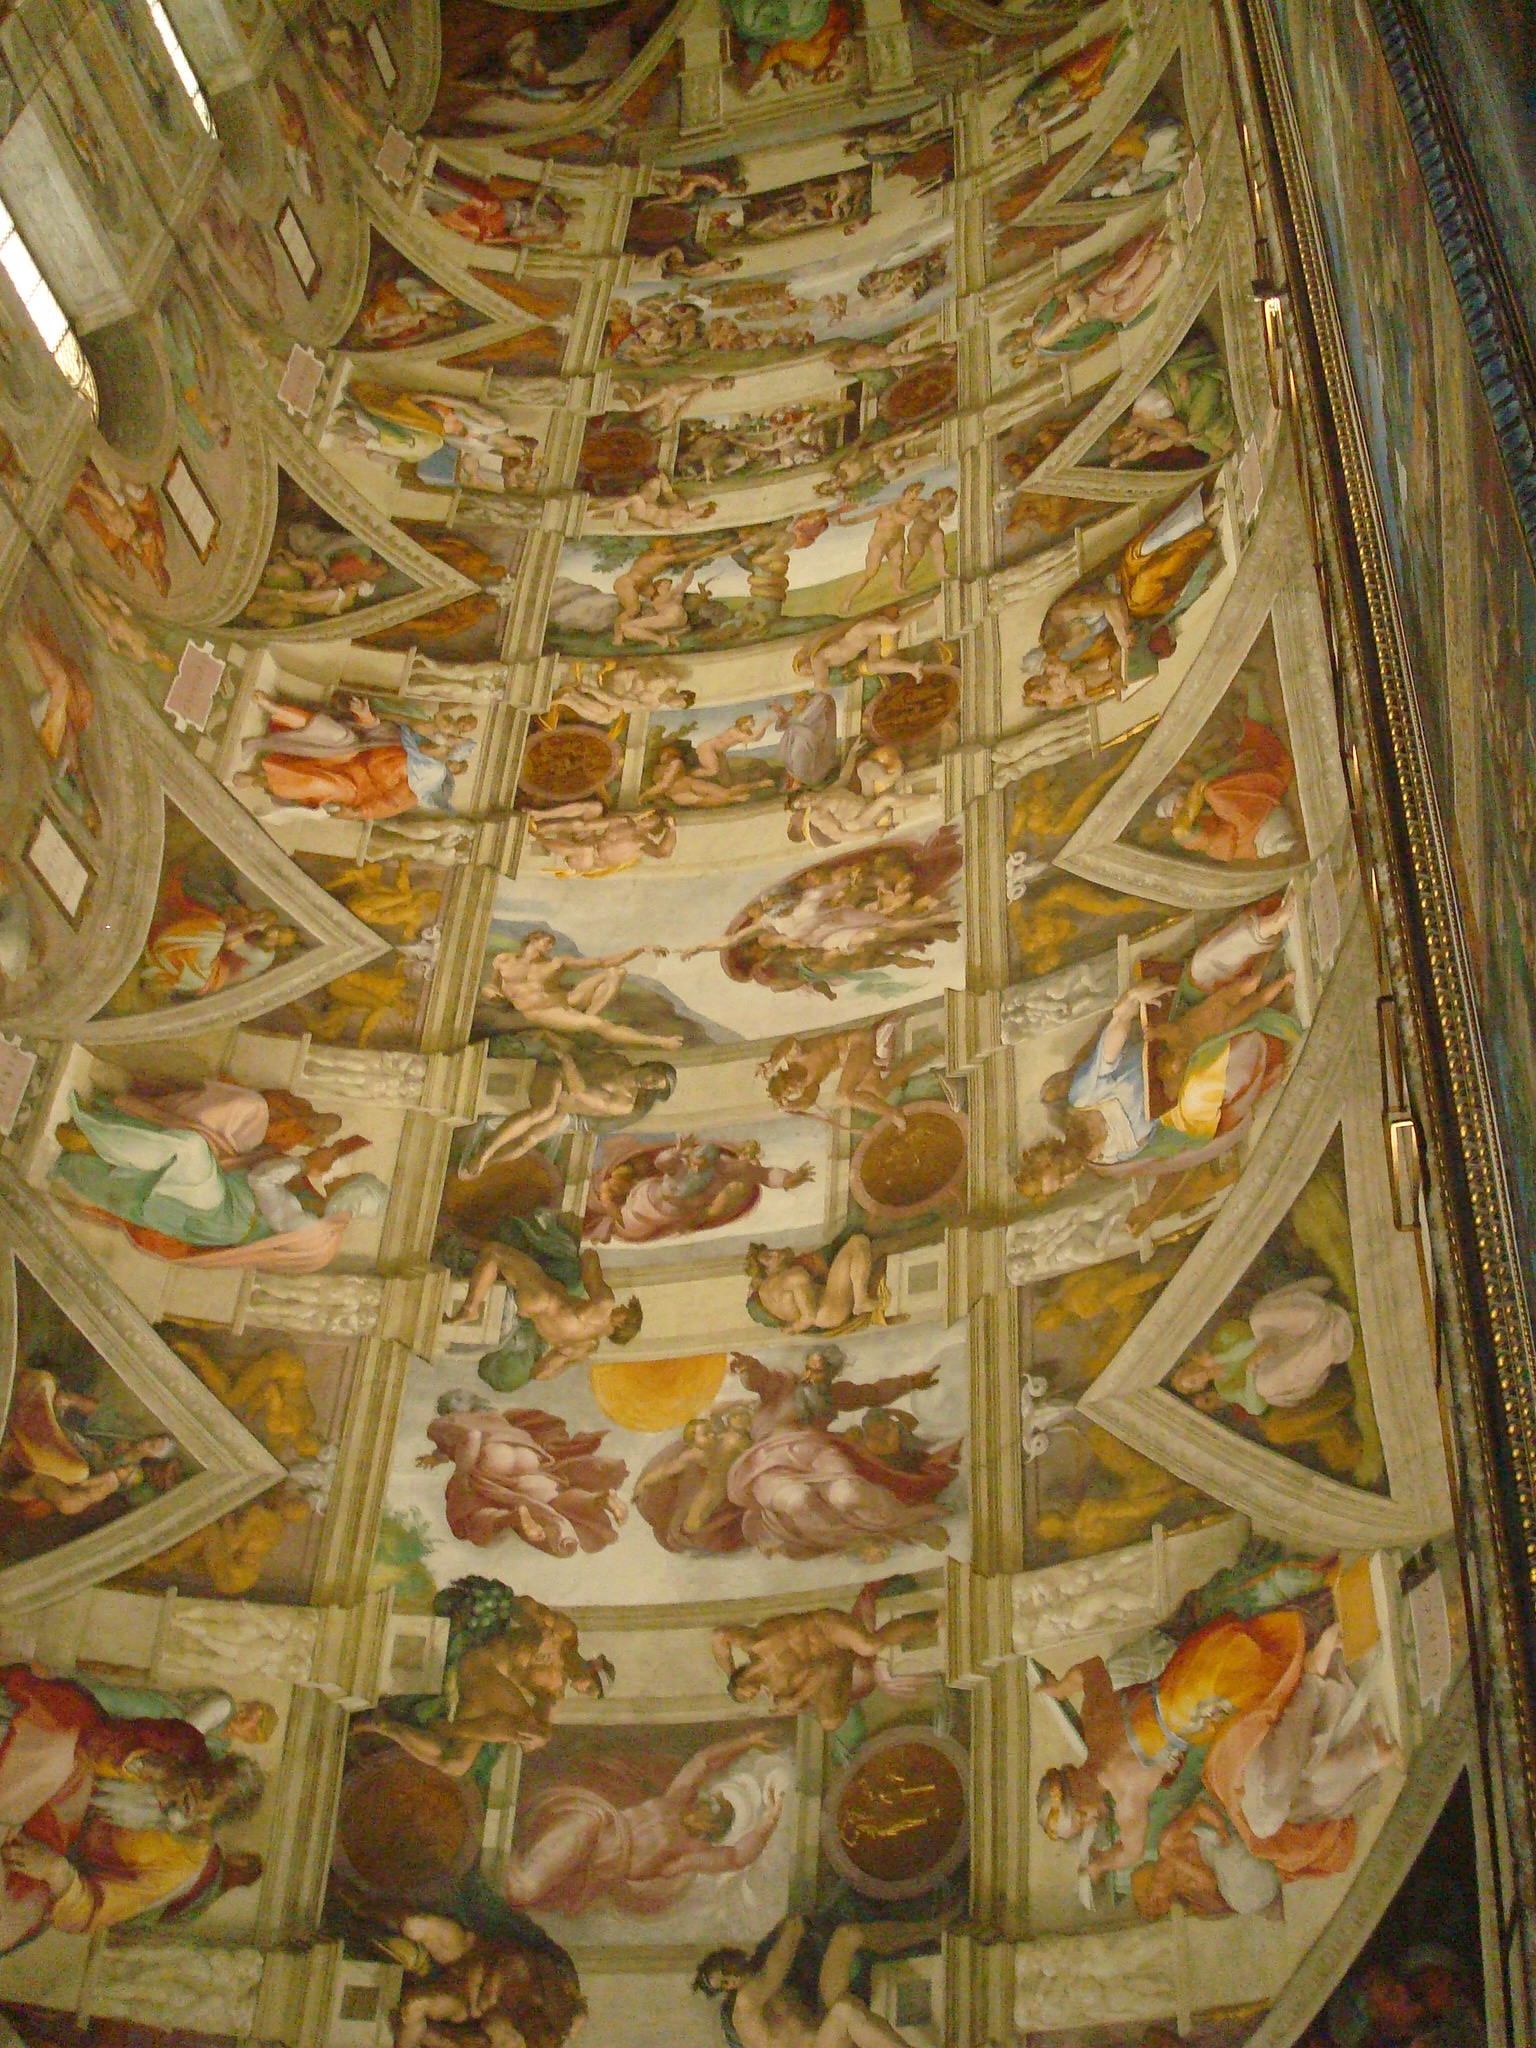 Sistine Chapel by Michaelangelo